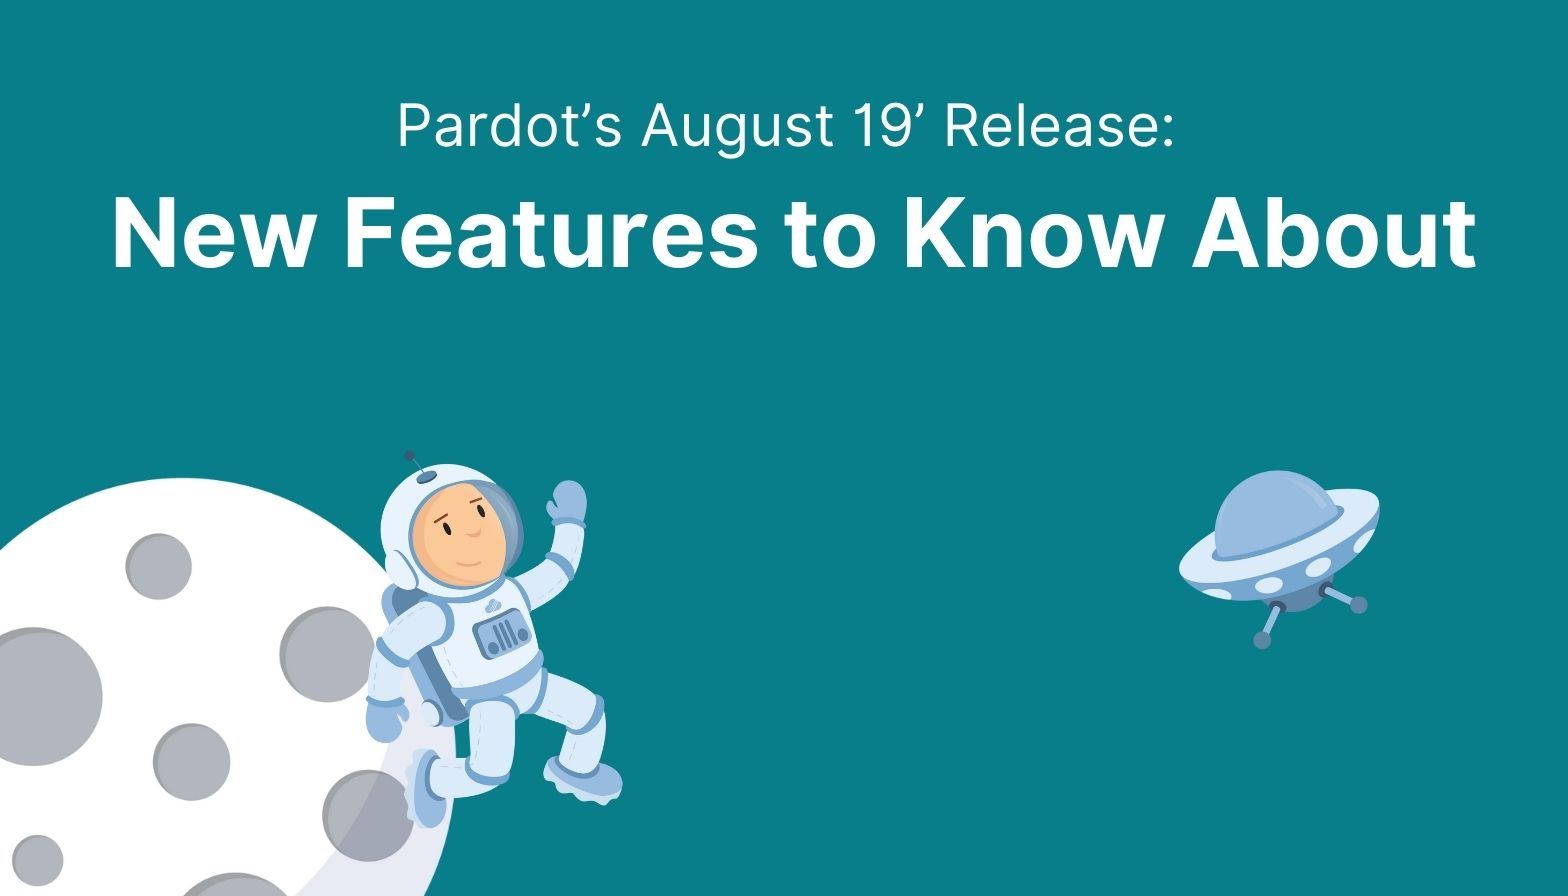 Feature image: Pardot August 19' release - New features to know about